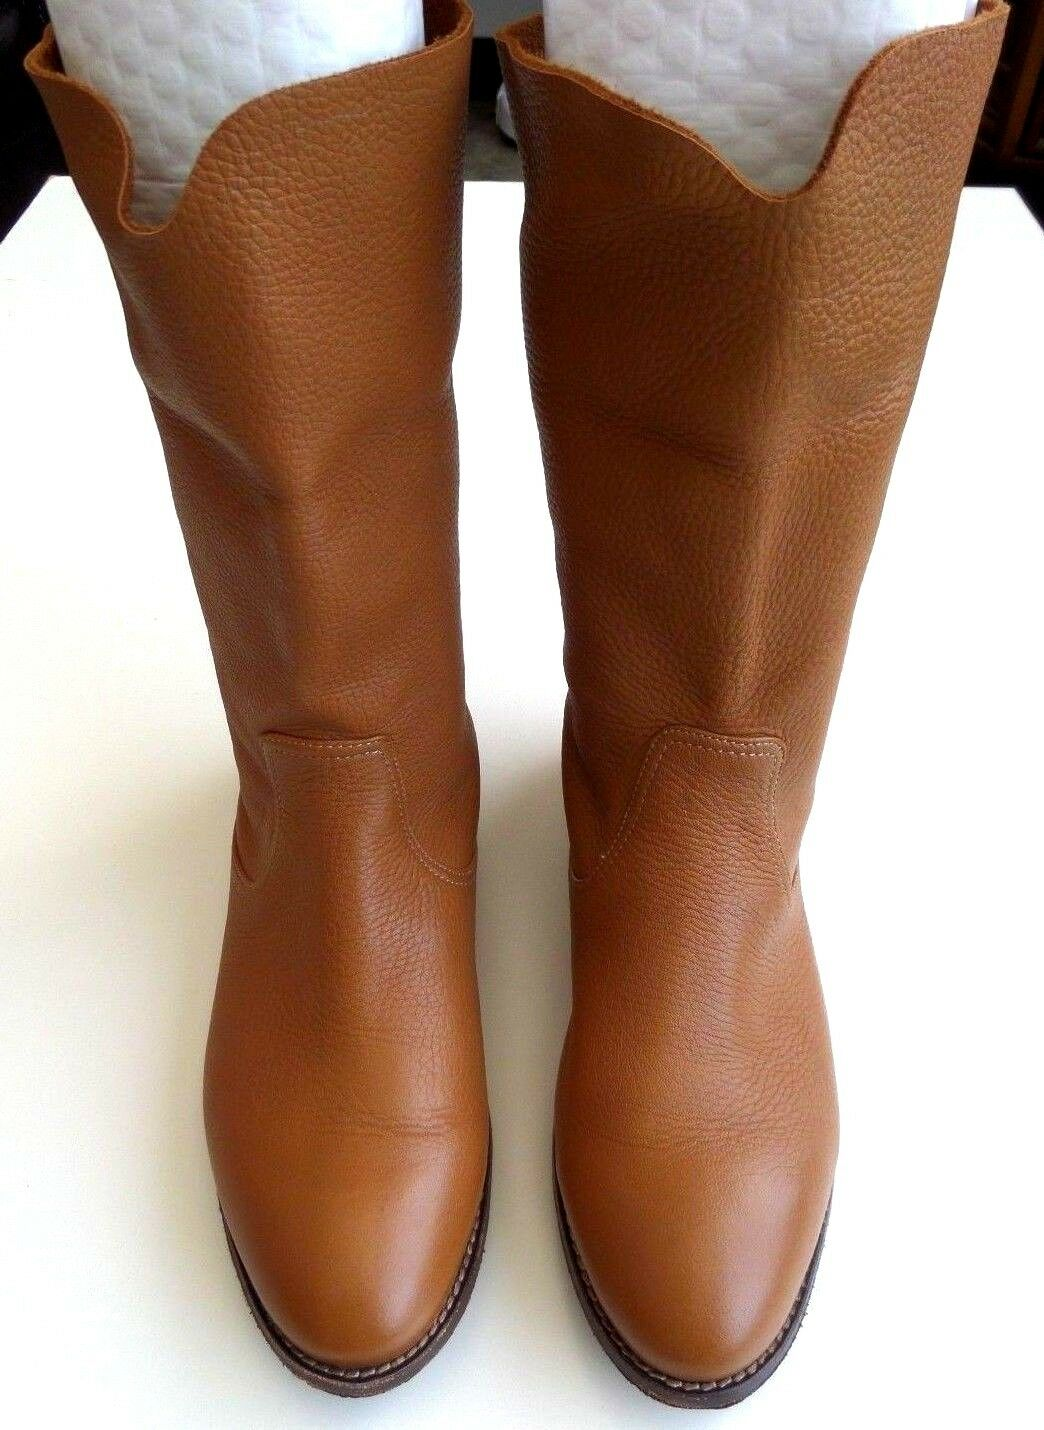 H.S. Trask Ava Ava Ava Womens Tan Brown Leather Boots Size 9 9bb5a5